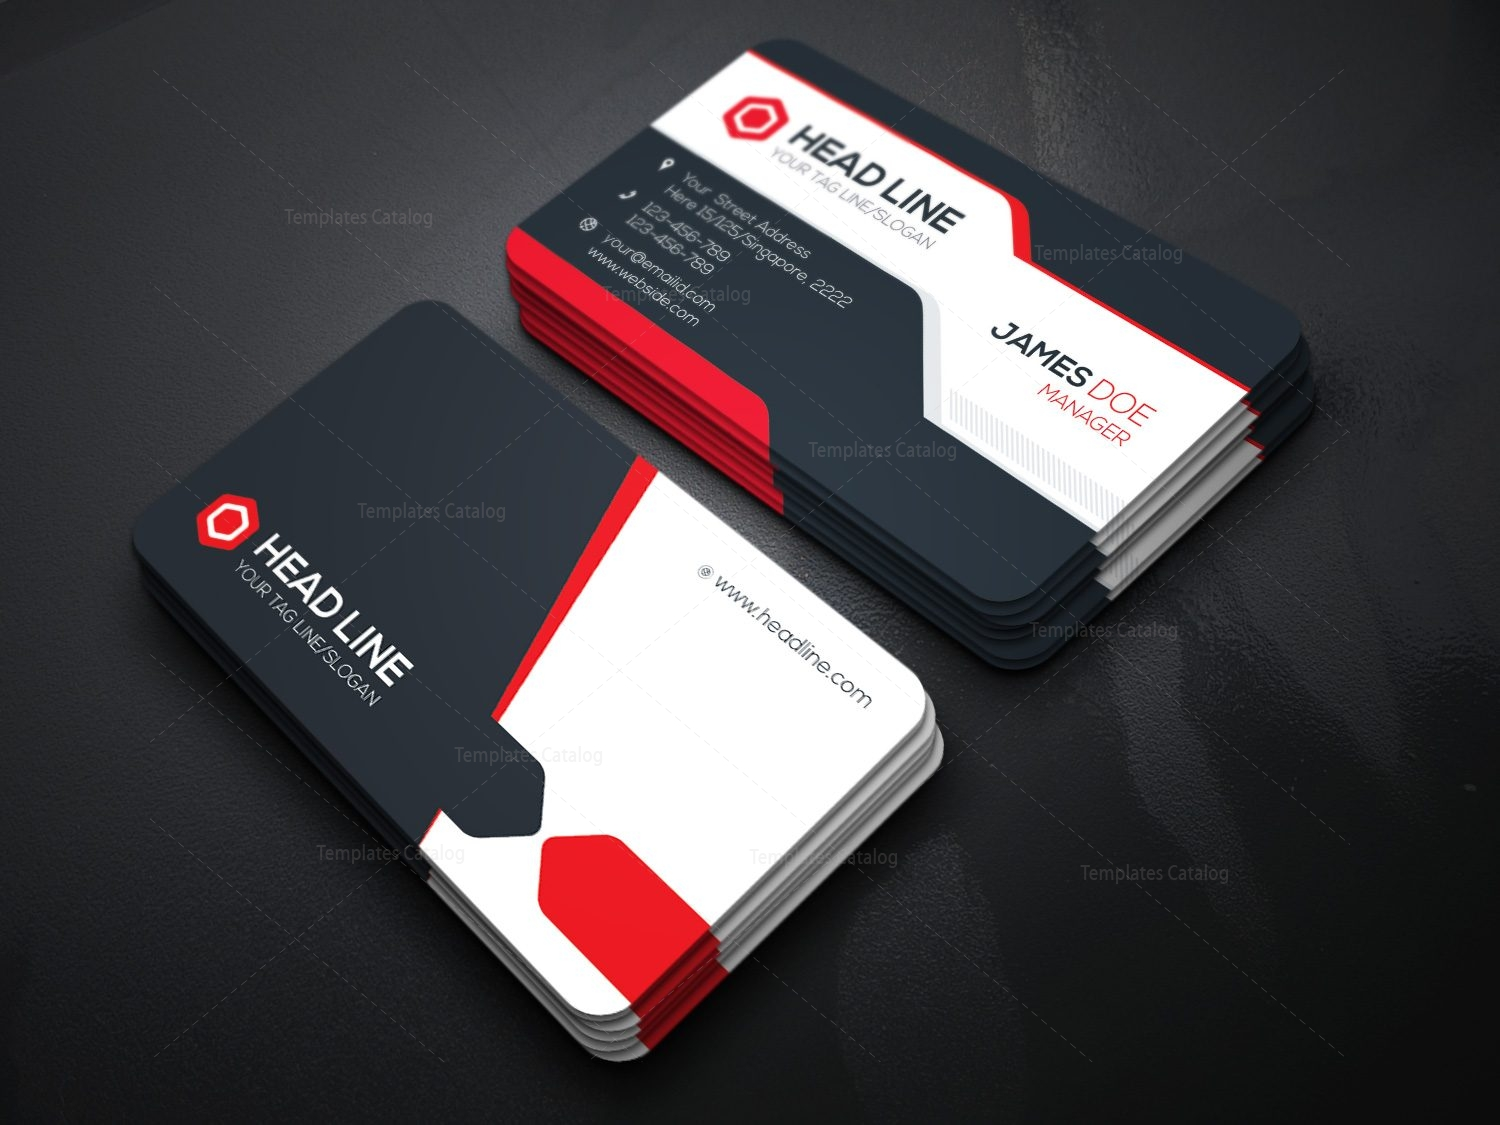 Stylish Visiting Card Template 000085 Template Catalog – Visiting Card